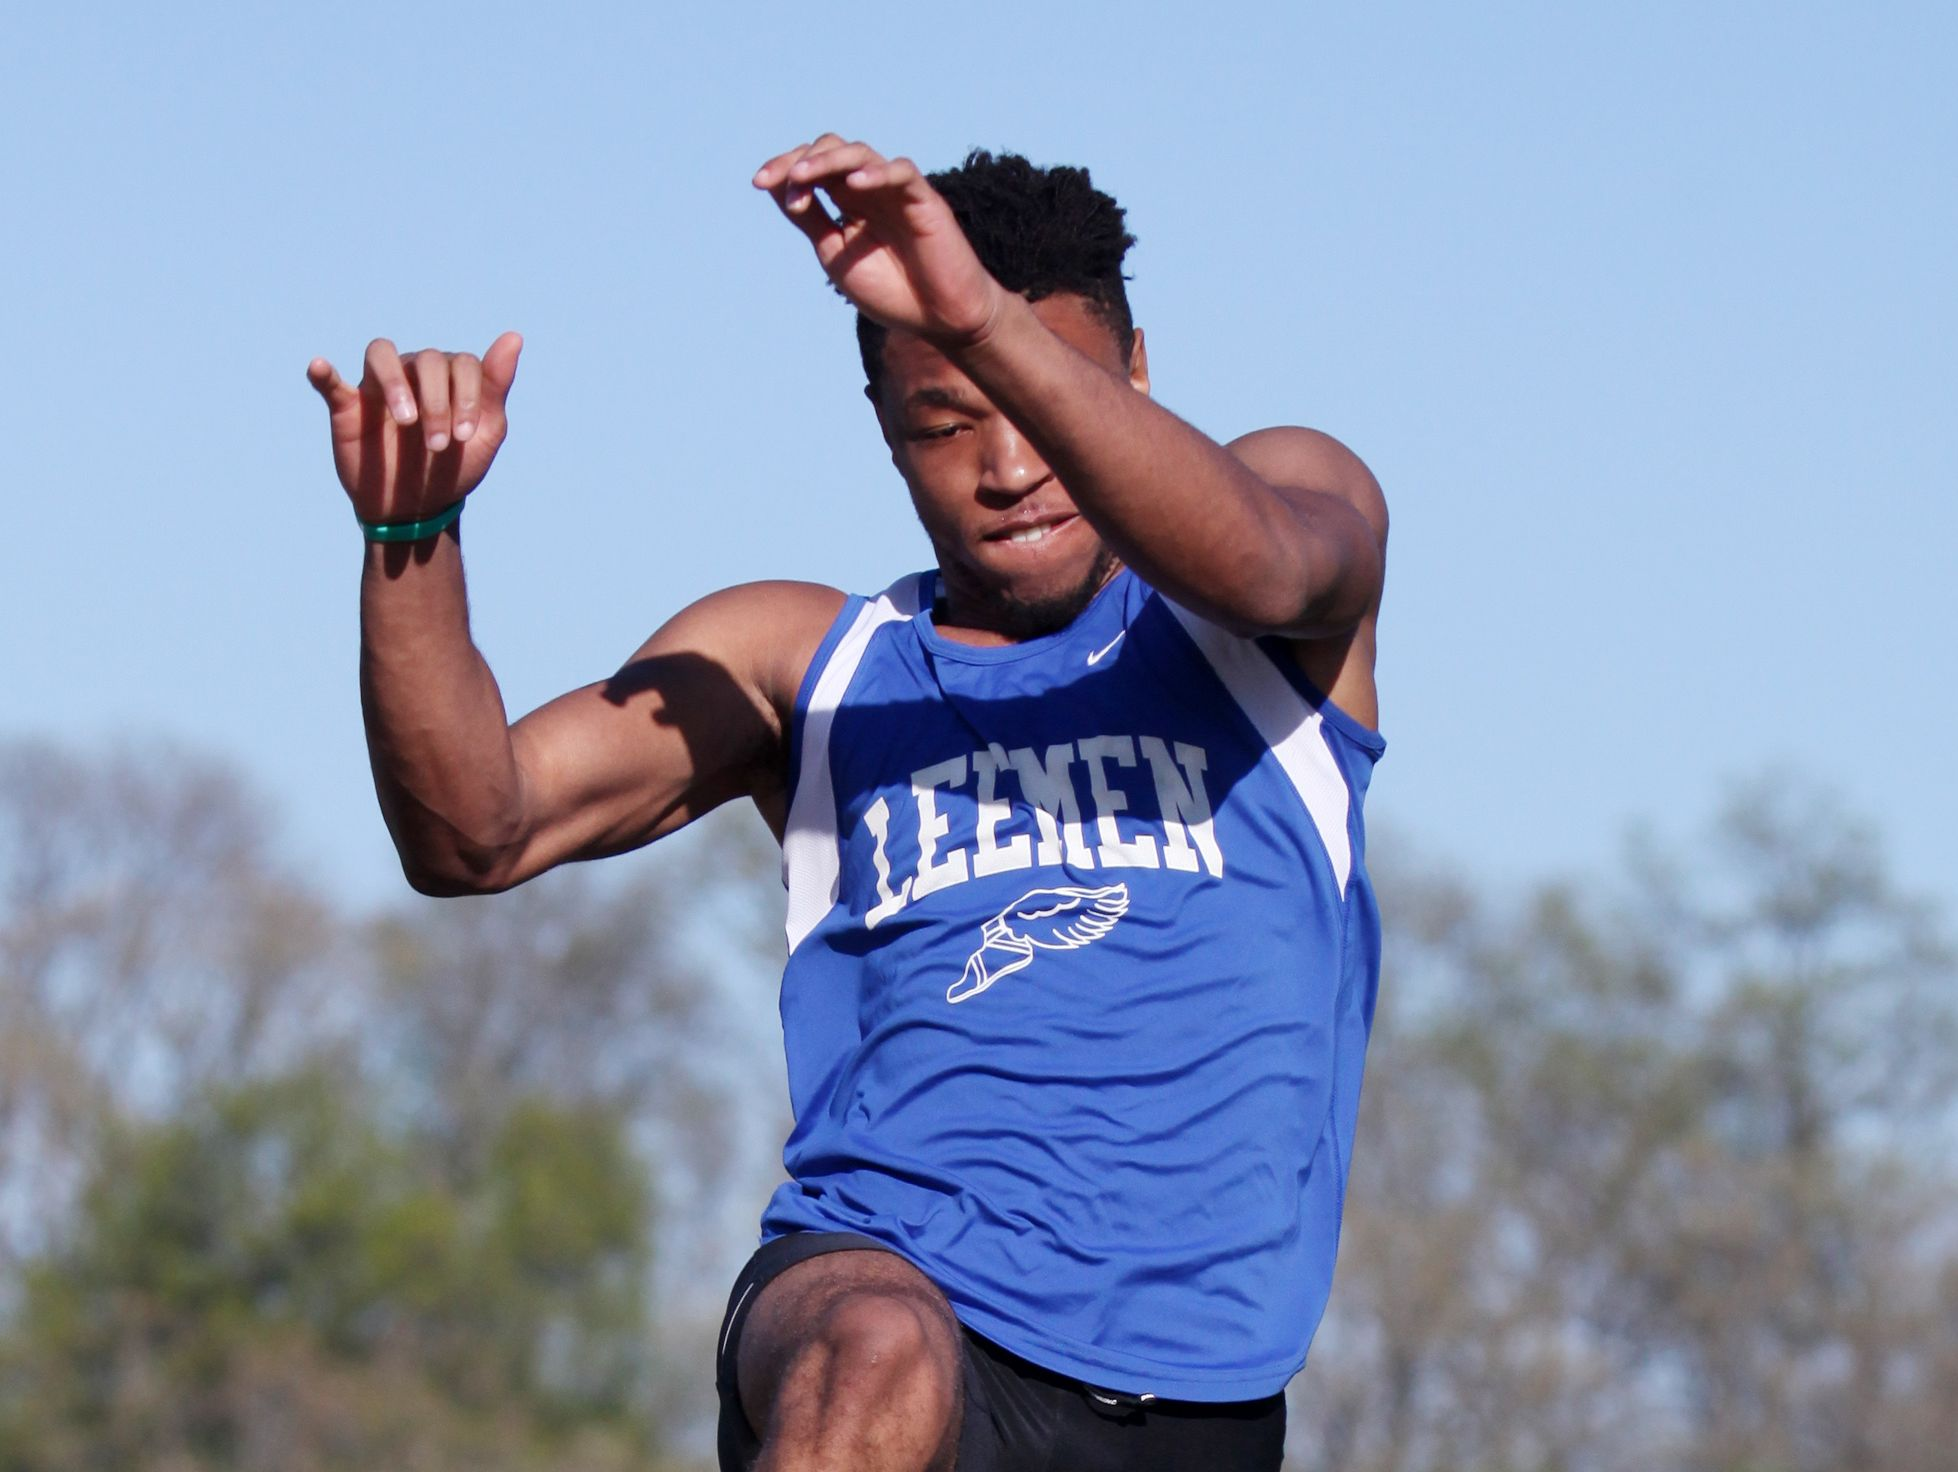 R.E. Lee senior Iyon Oravitz competes in the long jump, winning the event, at the track meet hosted by R.E. Lee on Wednesday, April 20, 2016.